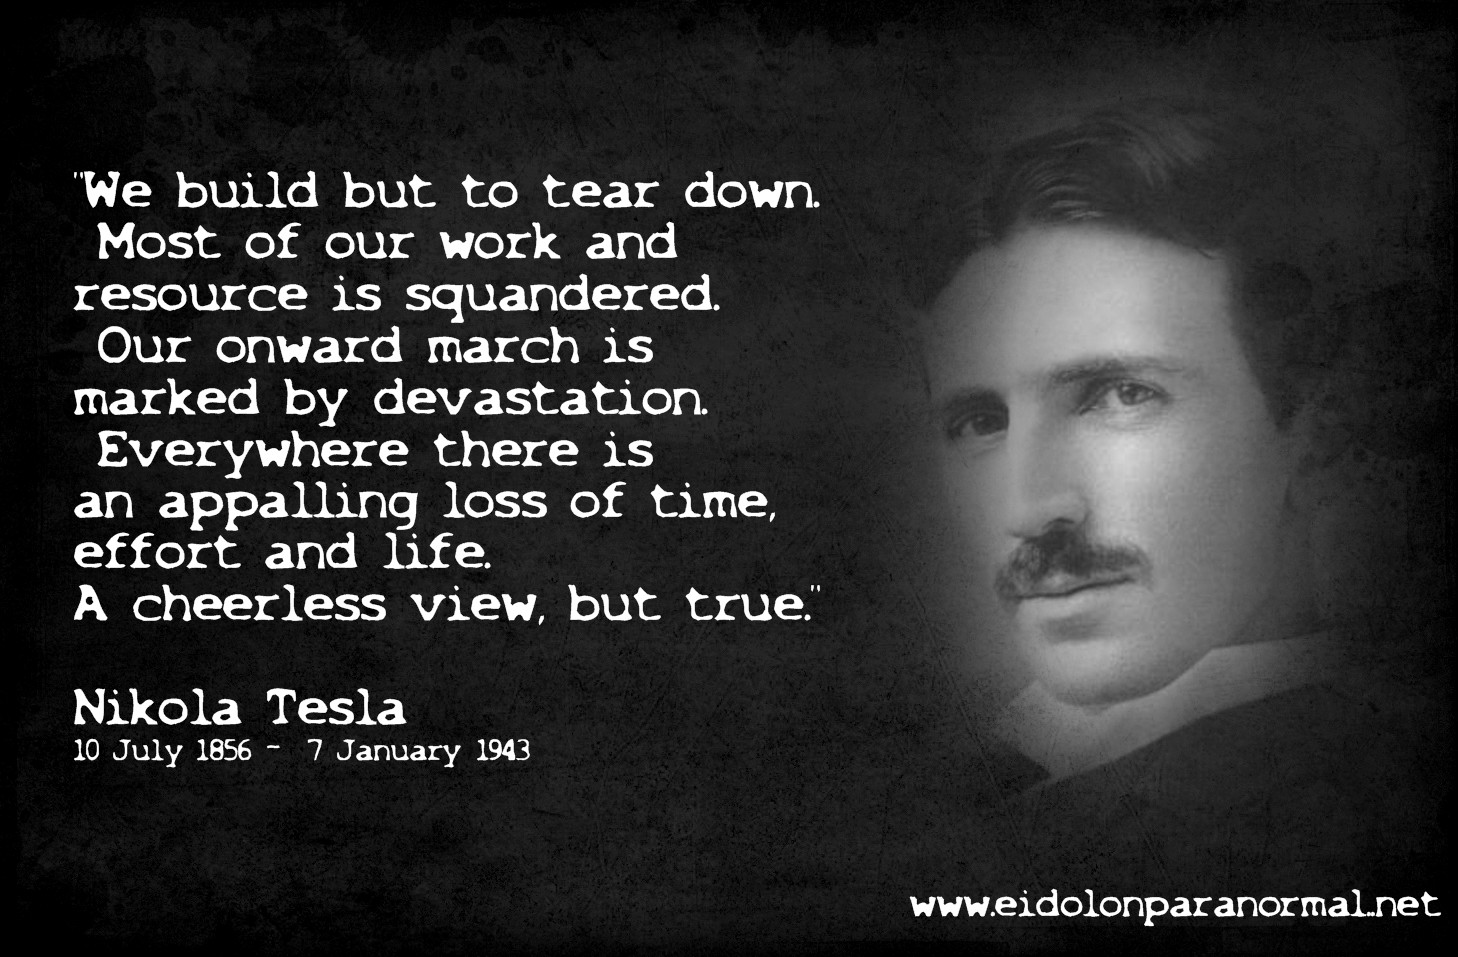 Tesla Death Ray Happy birthday nikola tesla!